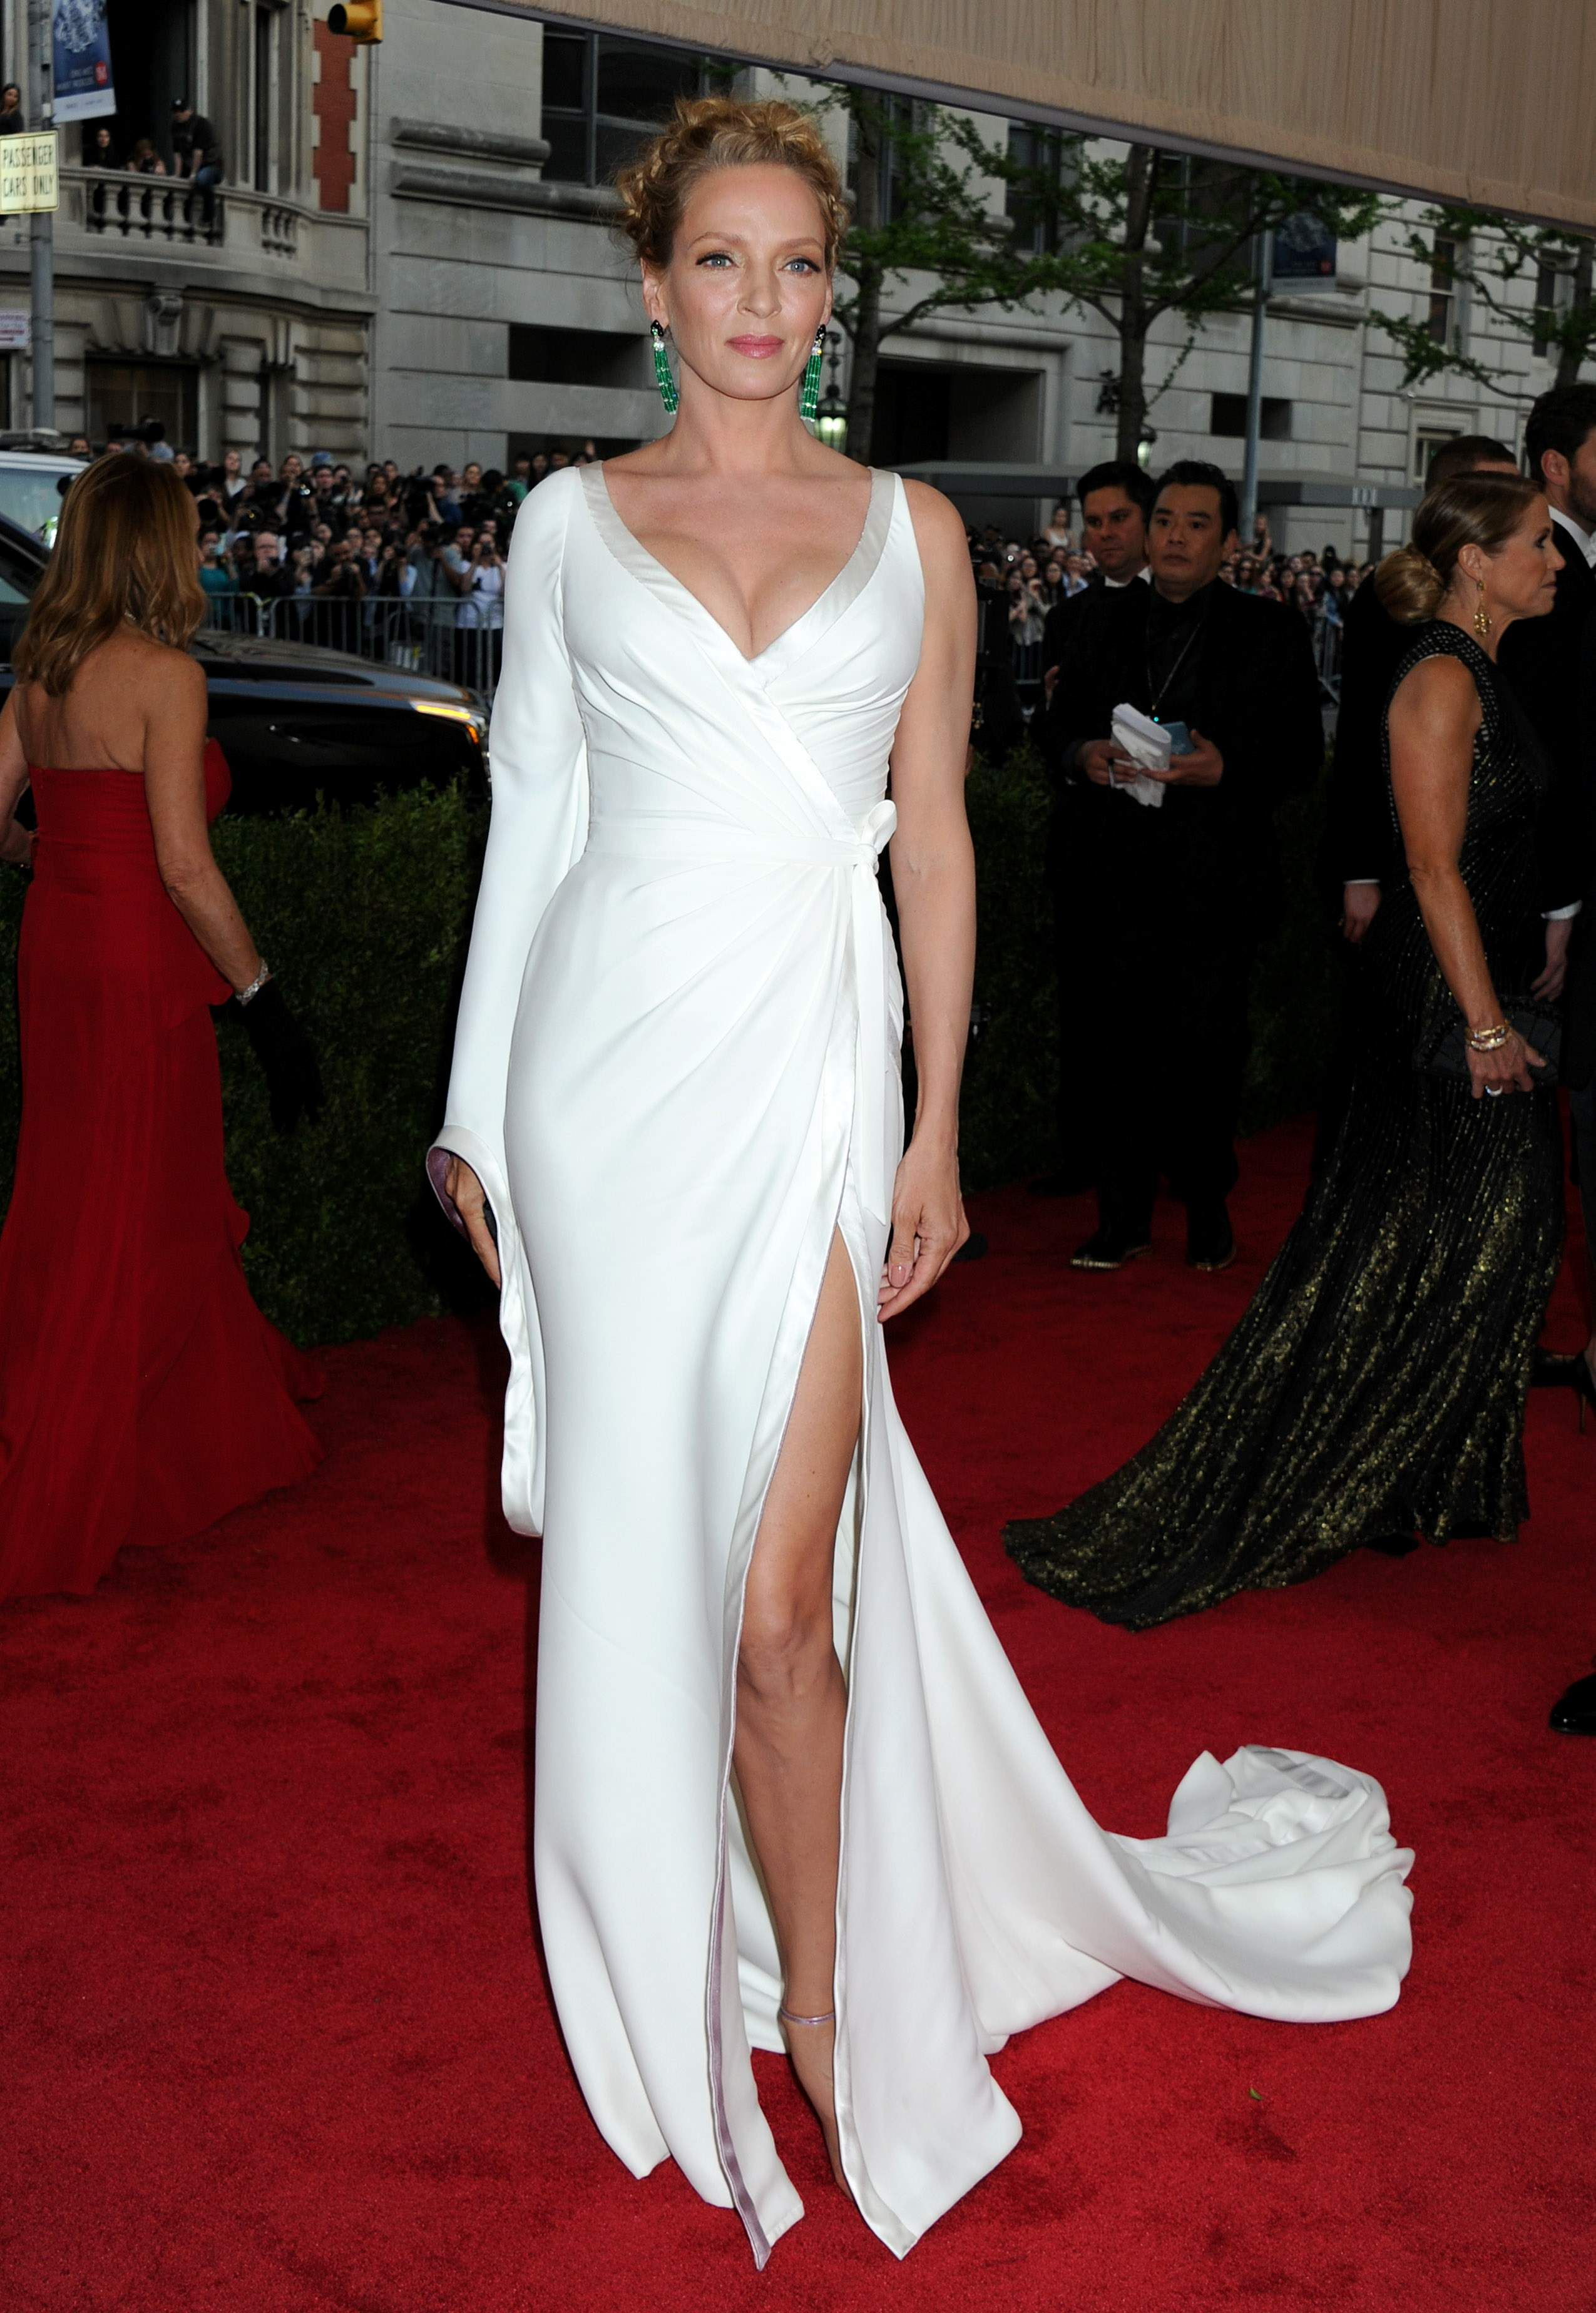 Uma Thurman attends the 'China: Through The Looking Glass' Costume Institute Benefit Gala at Metropolitan Museum of Art on May 4, 2015 in New York City